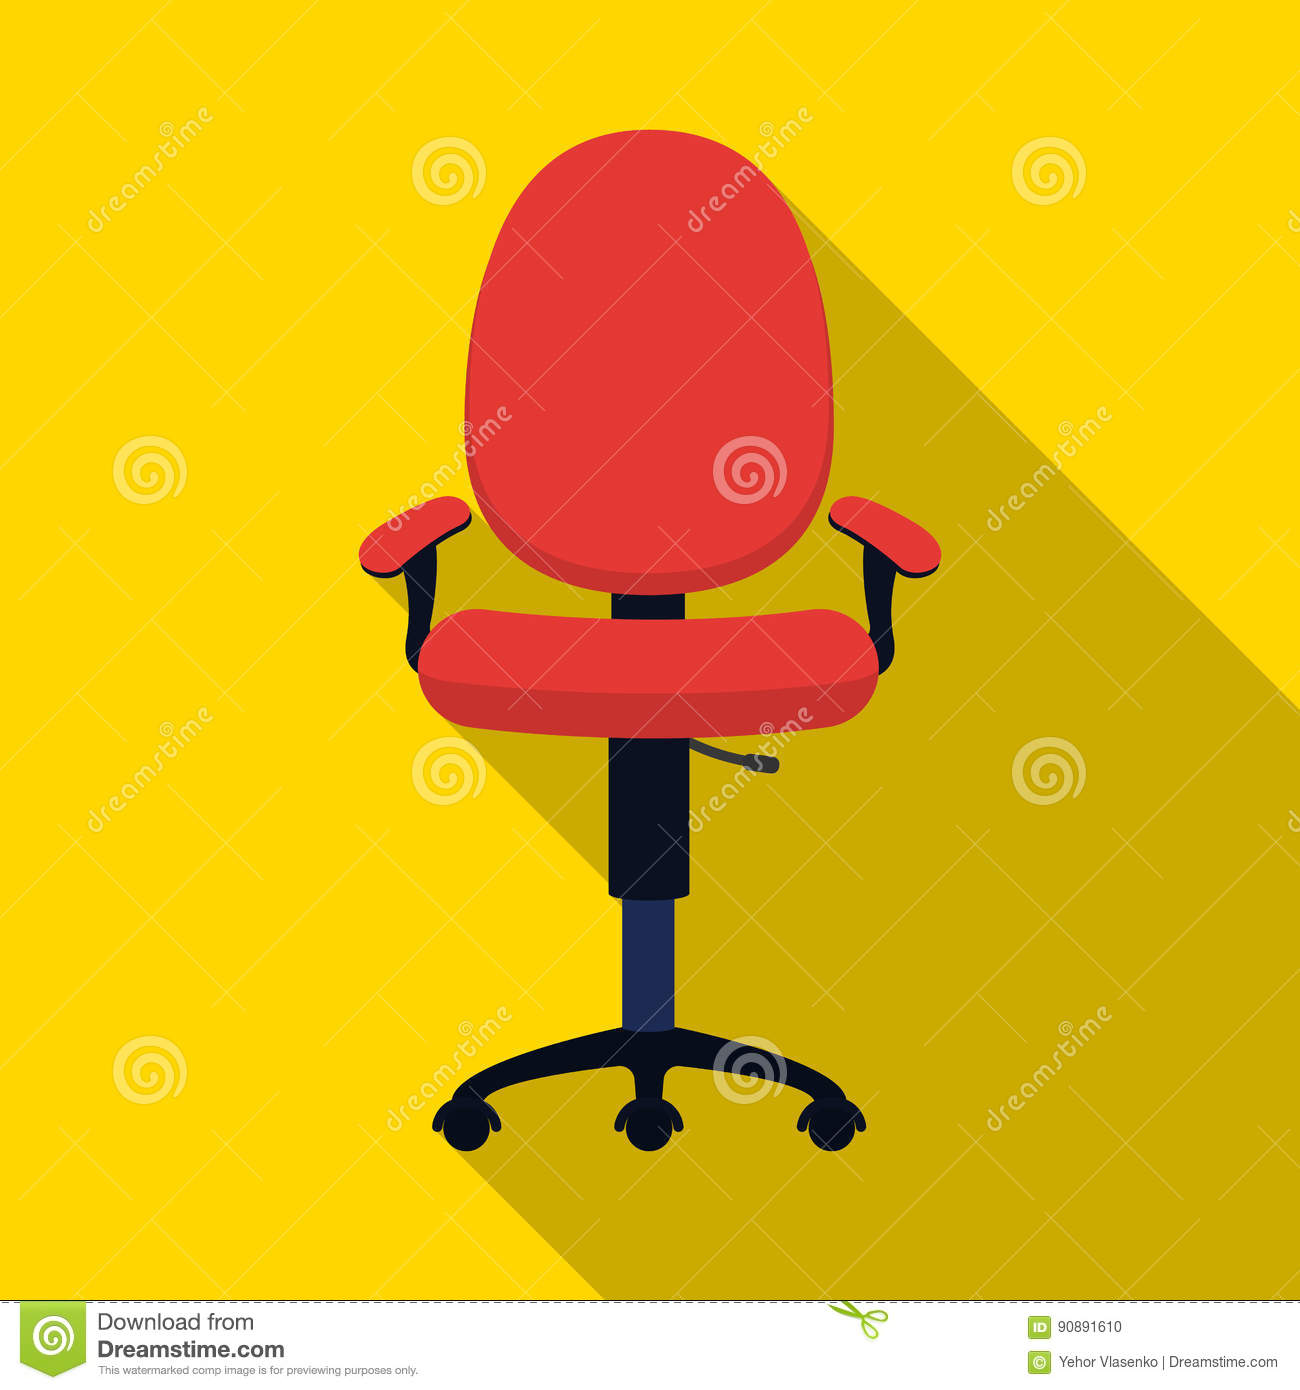 Office Chair Icon In Flat Style Isolated On White Background Furniture And Interior Symbol